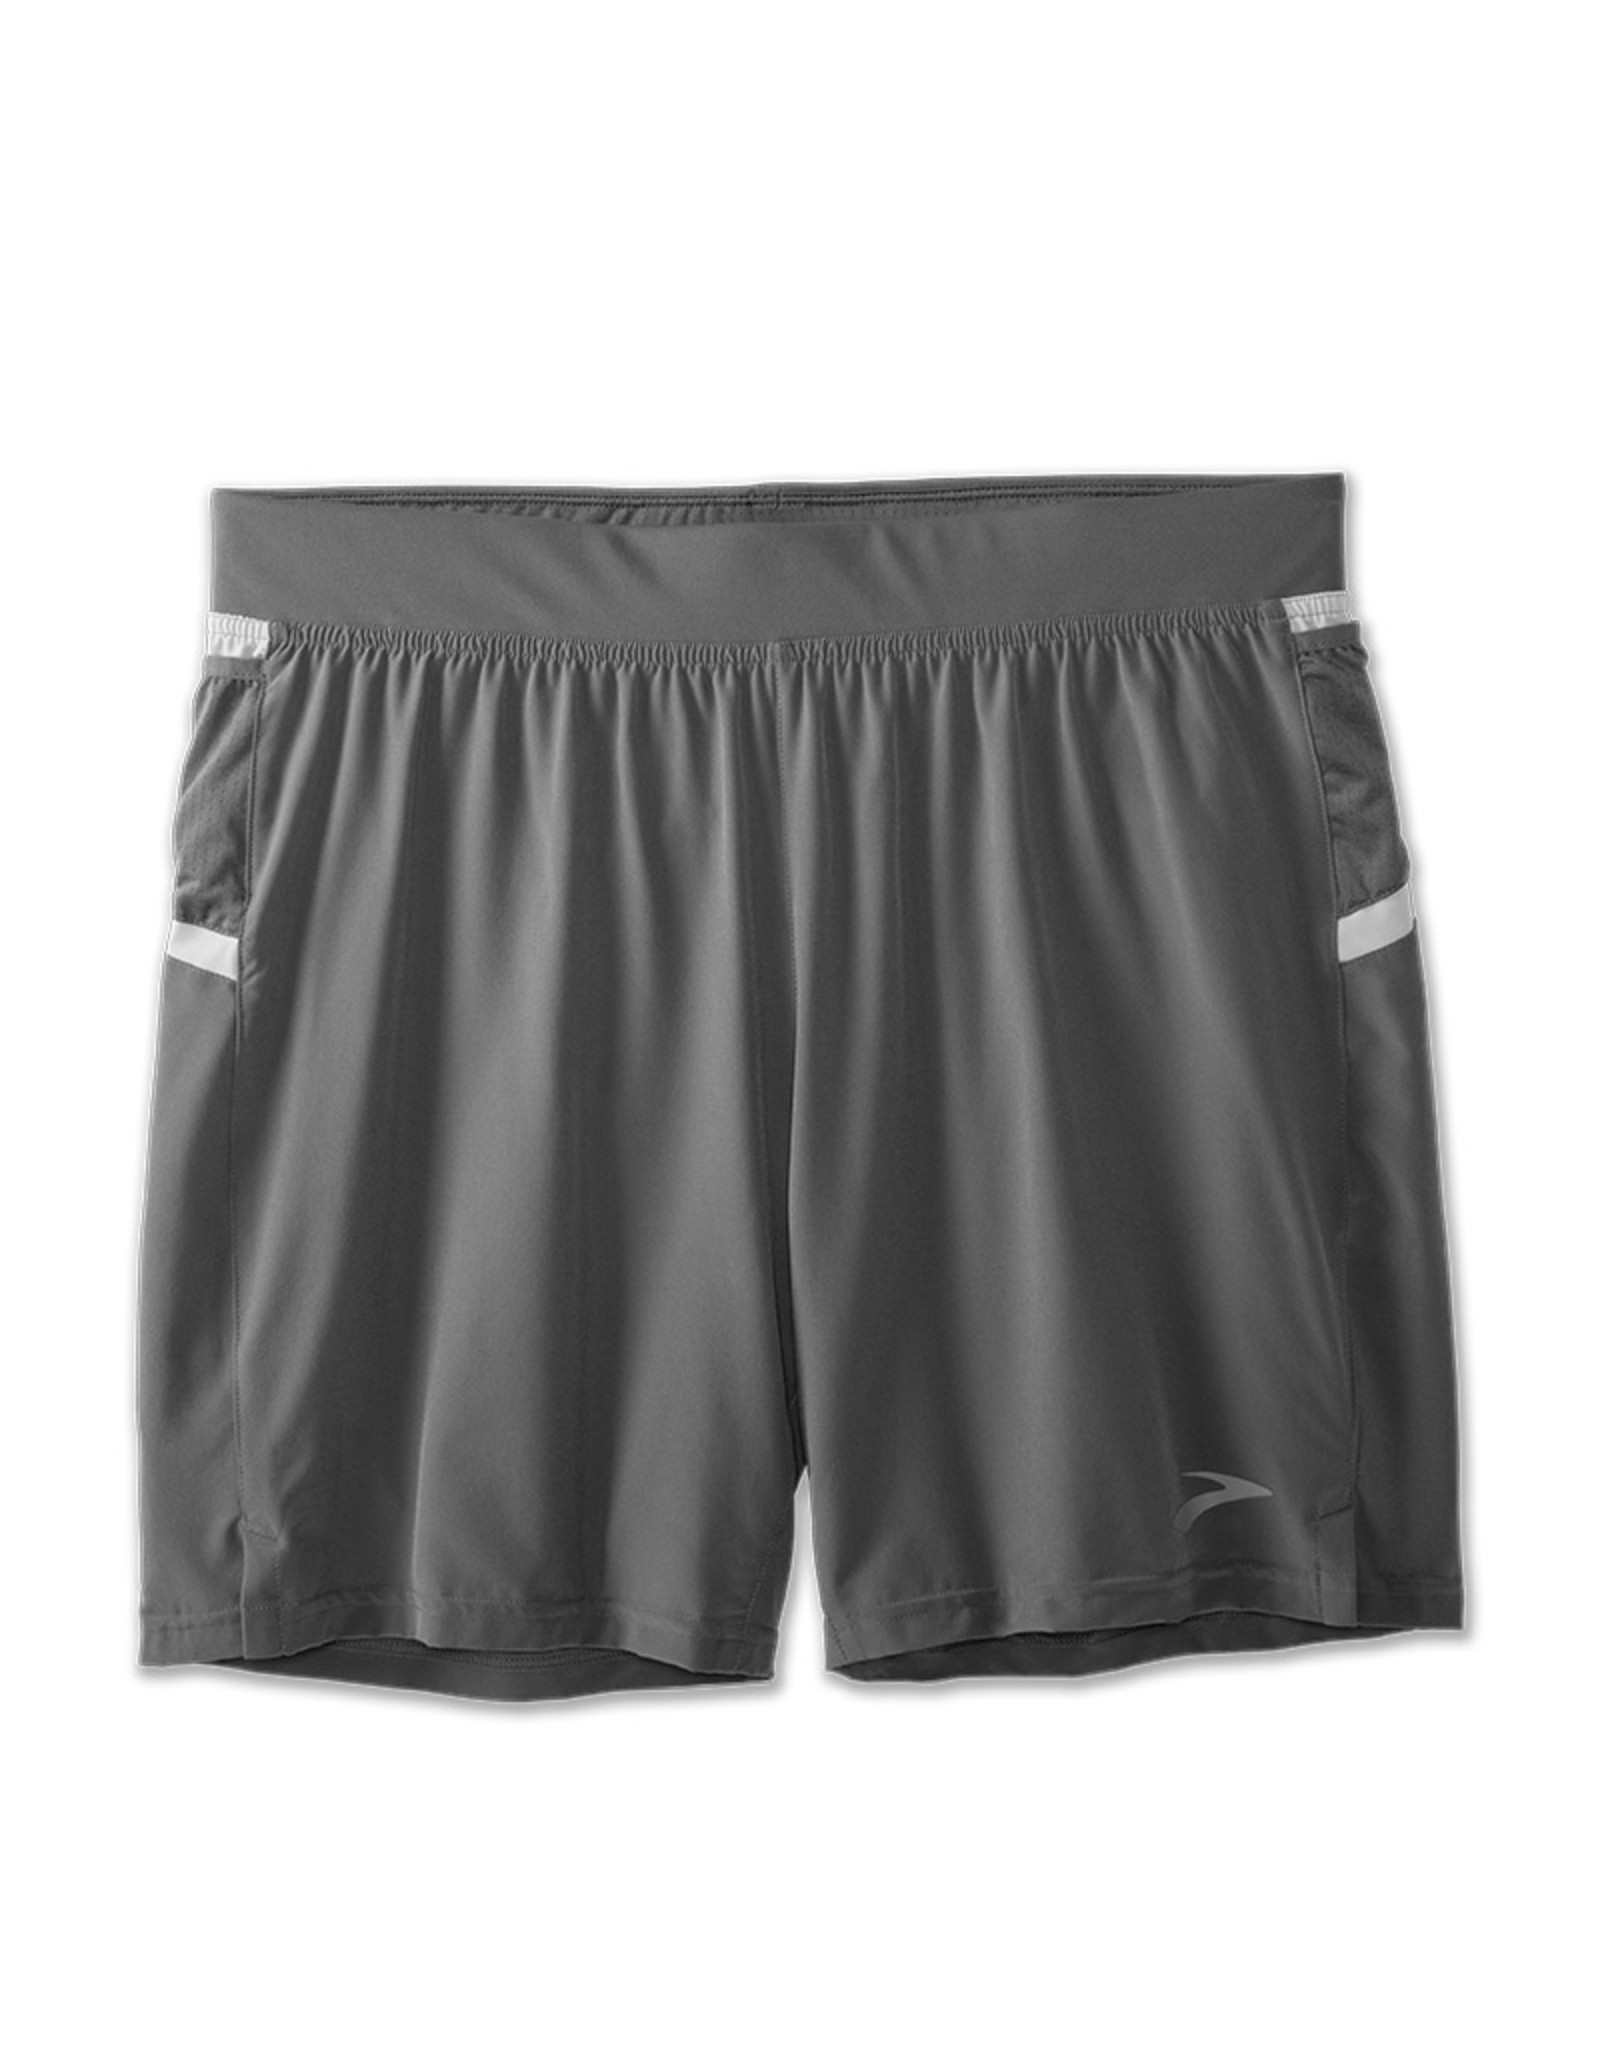 "BROOKS SHERPA 7"" SHORT"